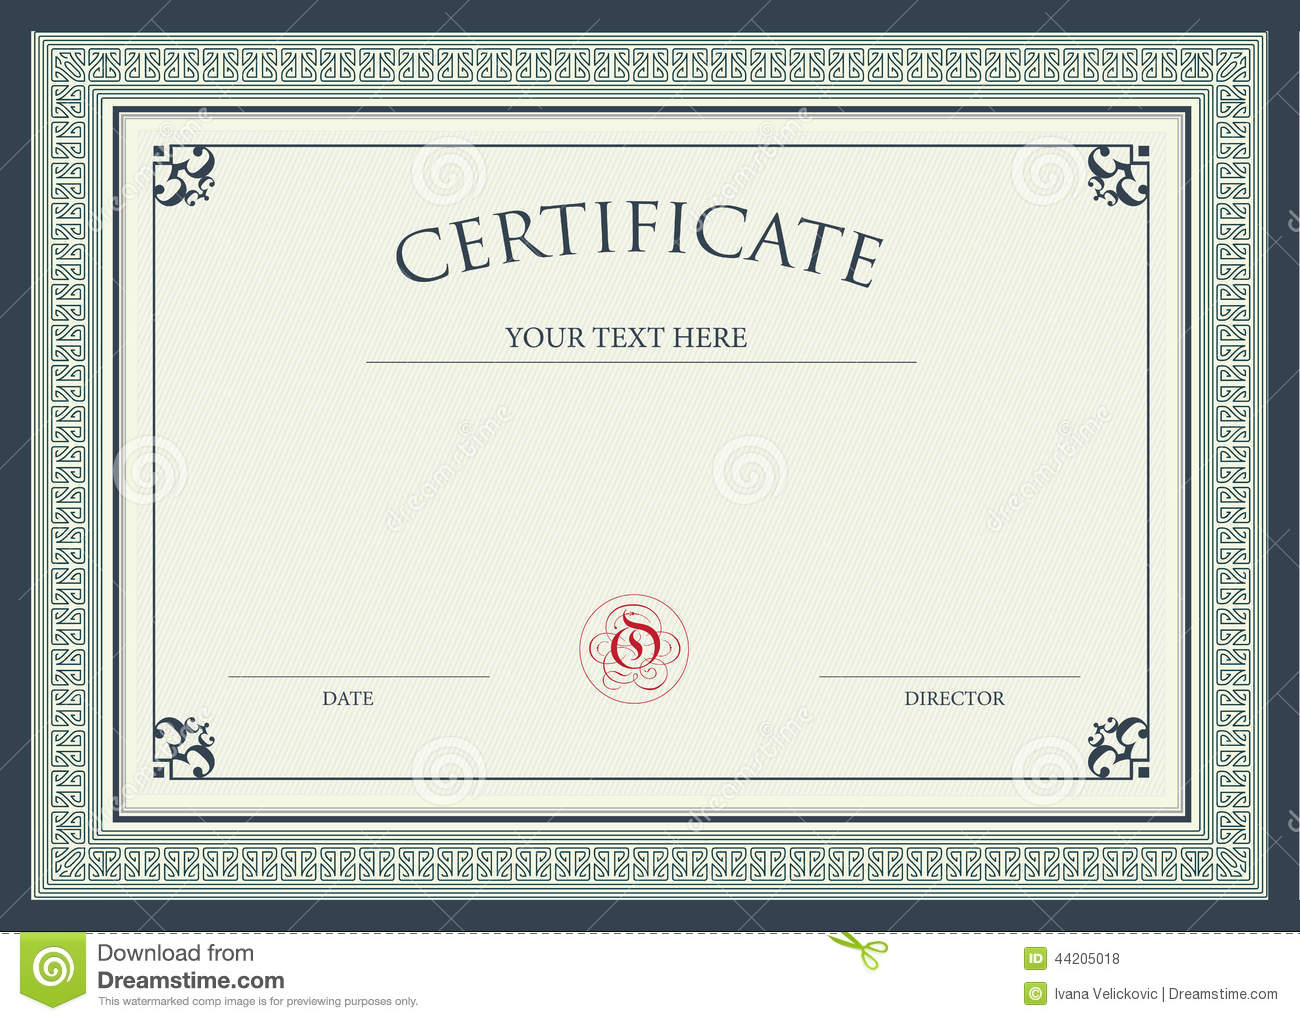 Certificate Of Award Stock Illustration  Image: 44205018